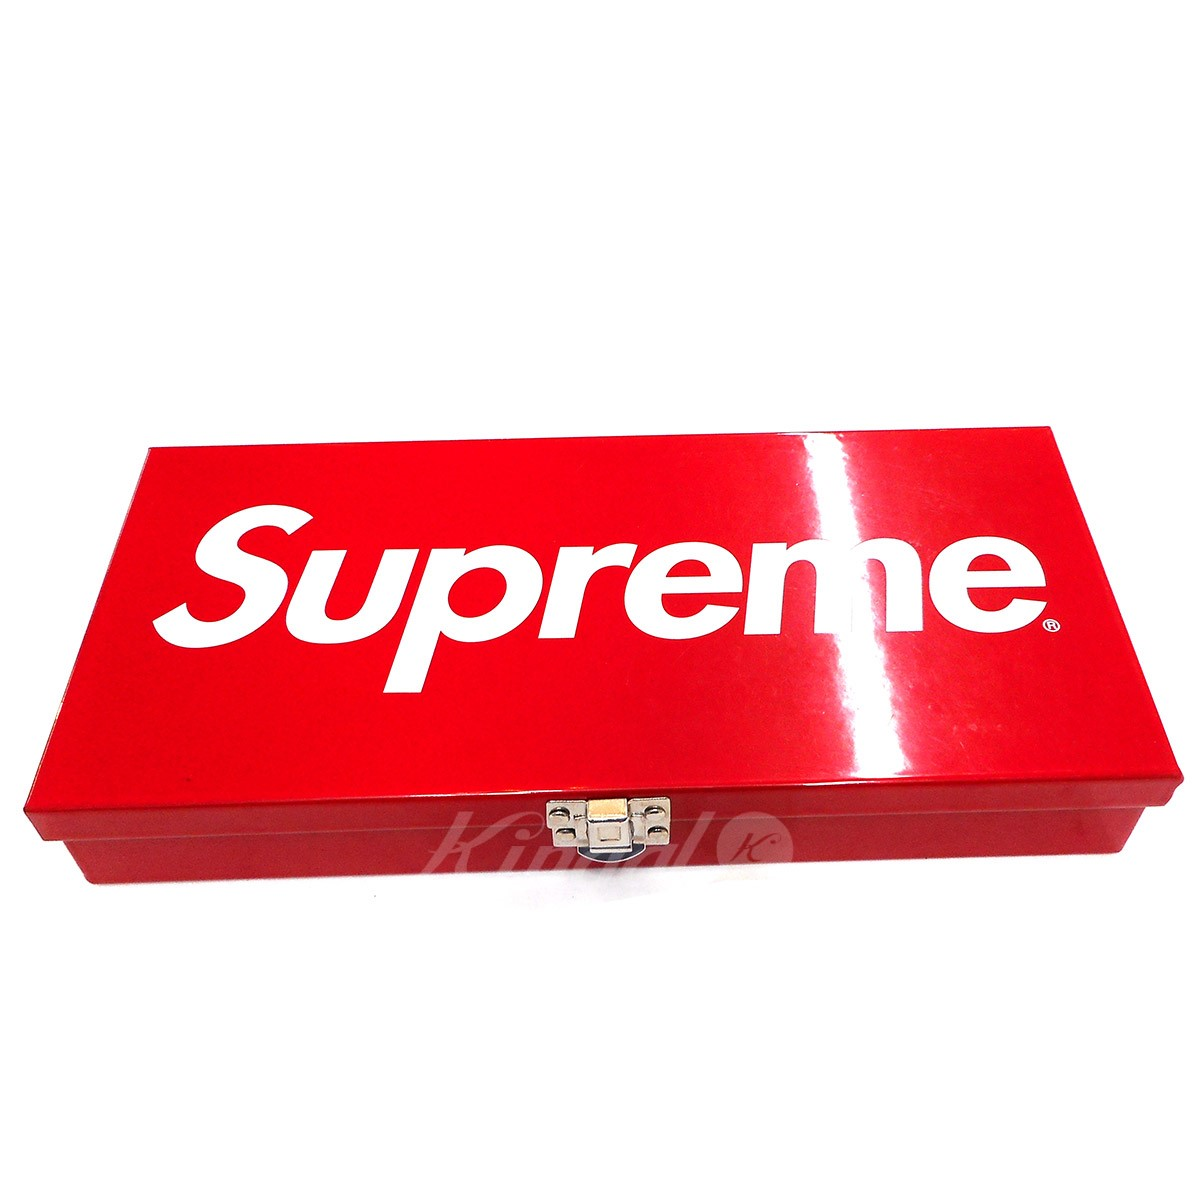 【中古】SUPREME 17SS Metal Storage Box 【送料無料】 【000453】 【KIND1550】